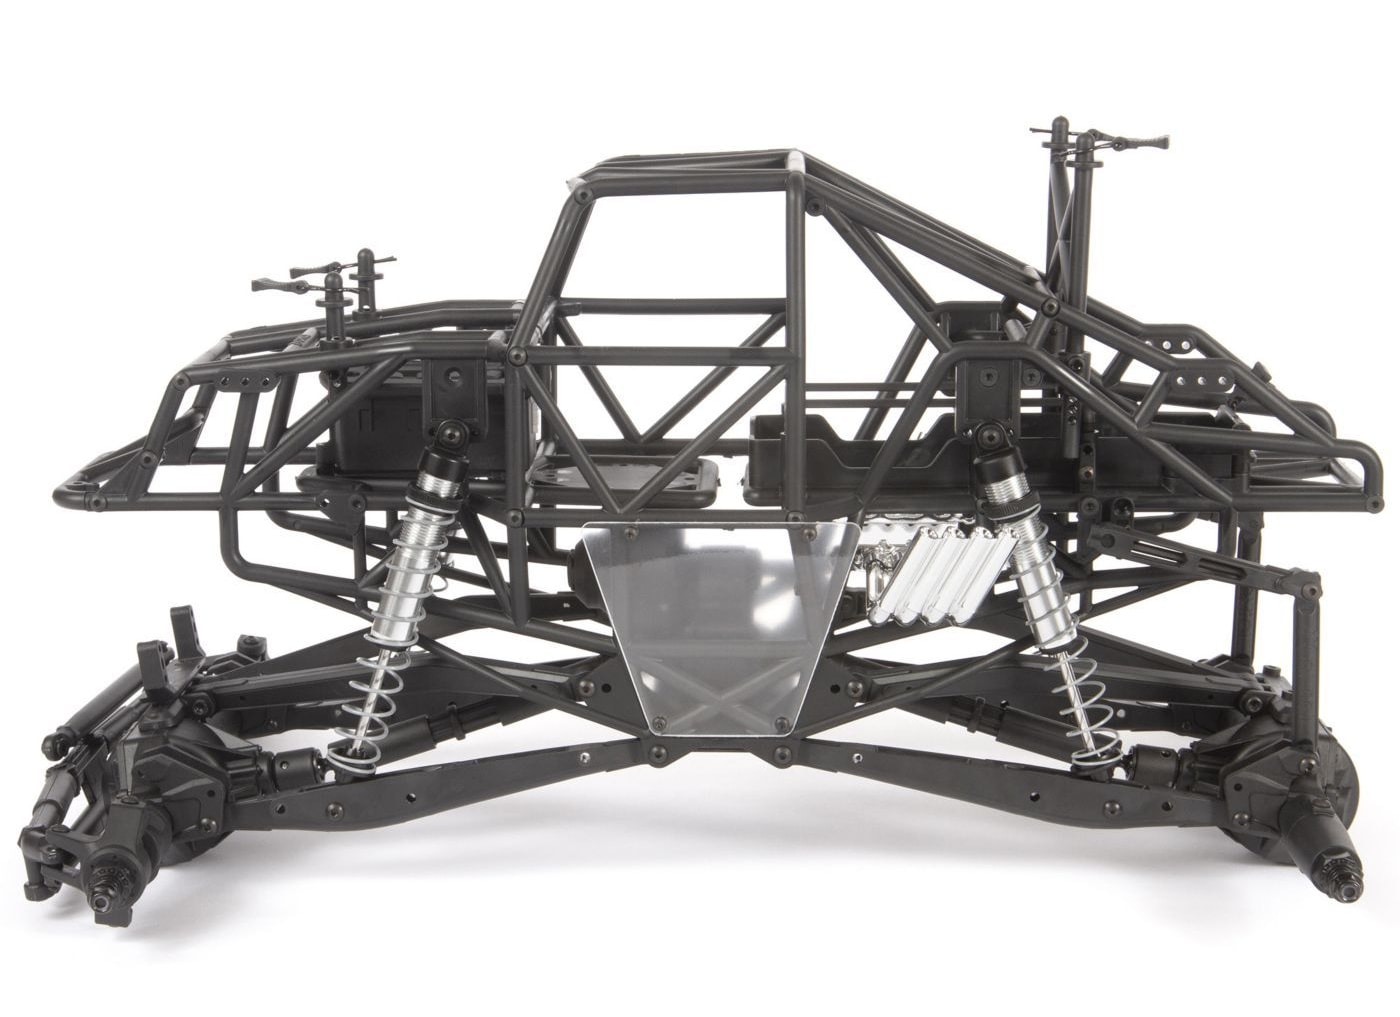 Build Your Own Monster with Axial's SMT10 Raw Builders Kit